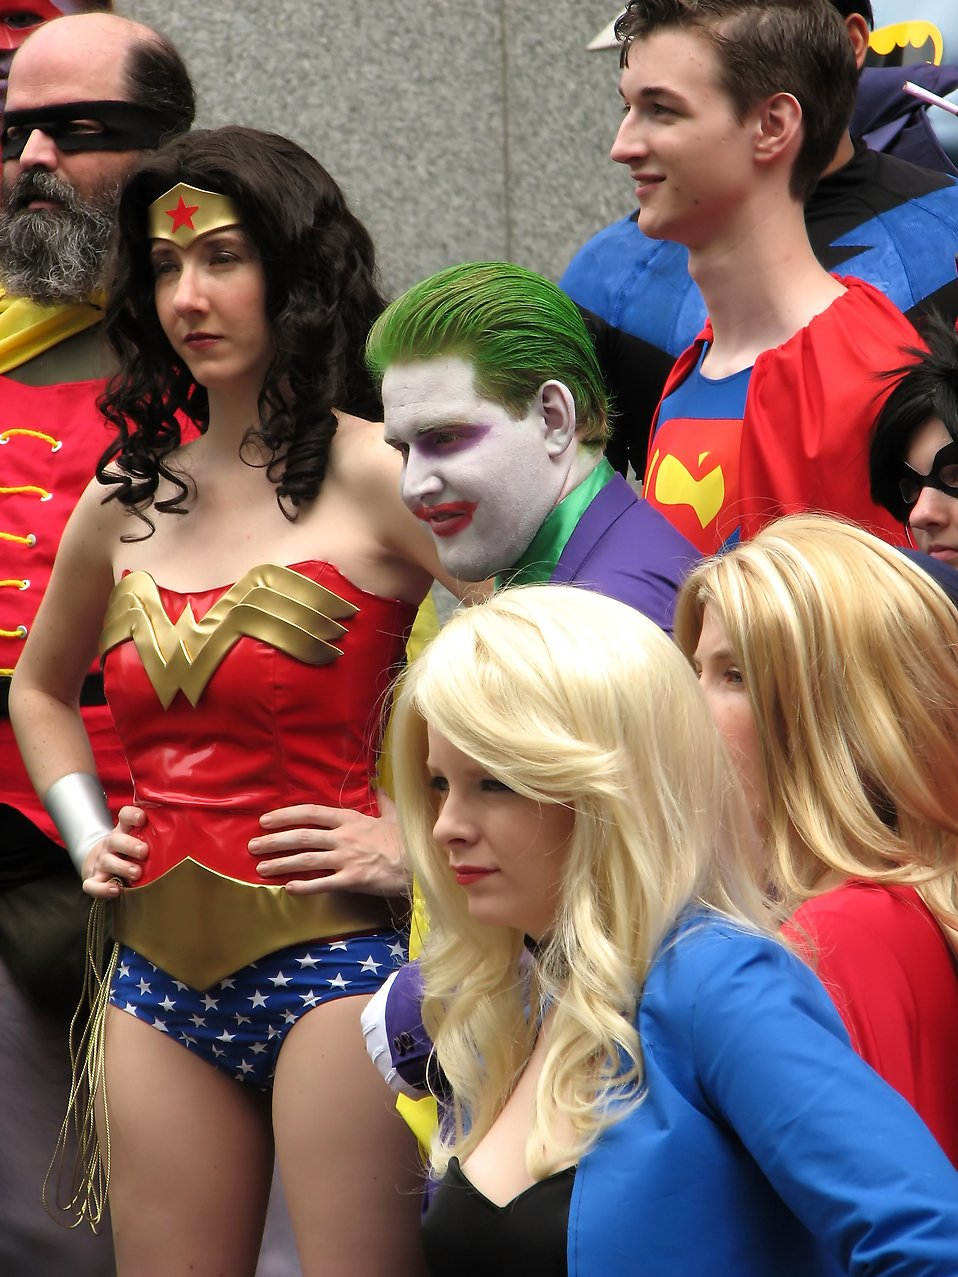 A group of superheroes in costume at Dragoncon 2009 in Atlanta, Georgia.